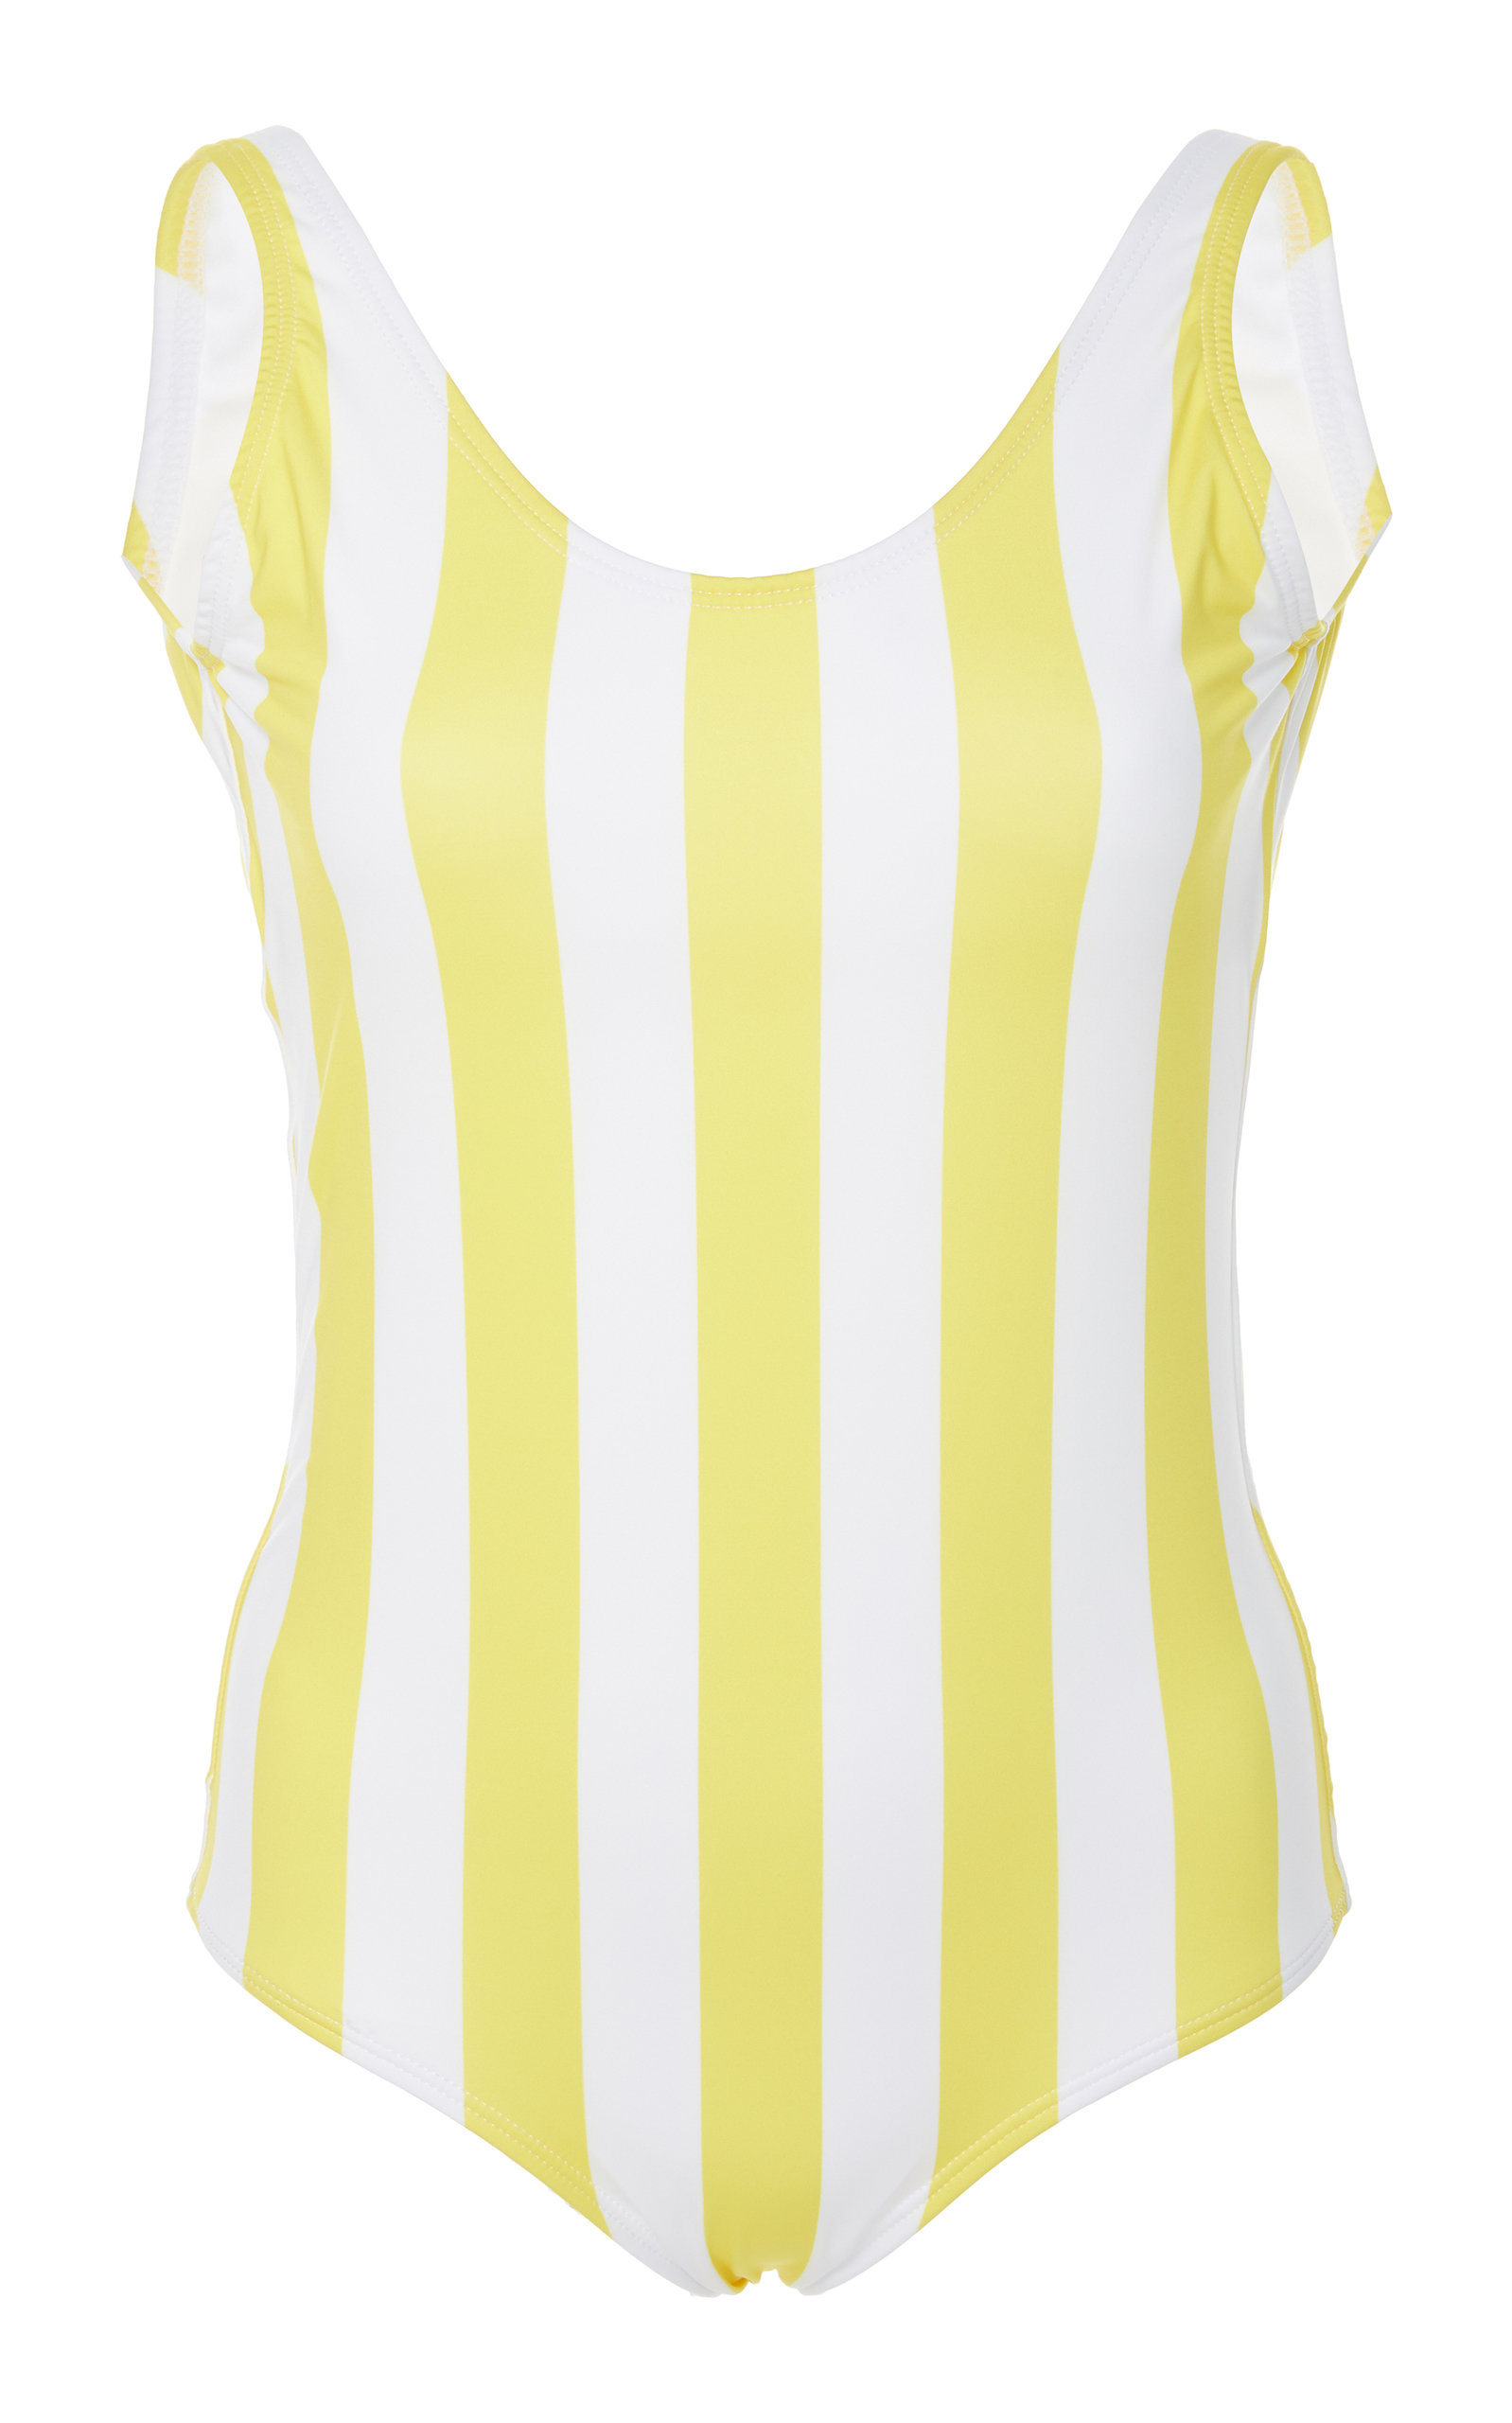 VERDE LIMON Trinidad Backless One Piece Swimsuit in Yellow